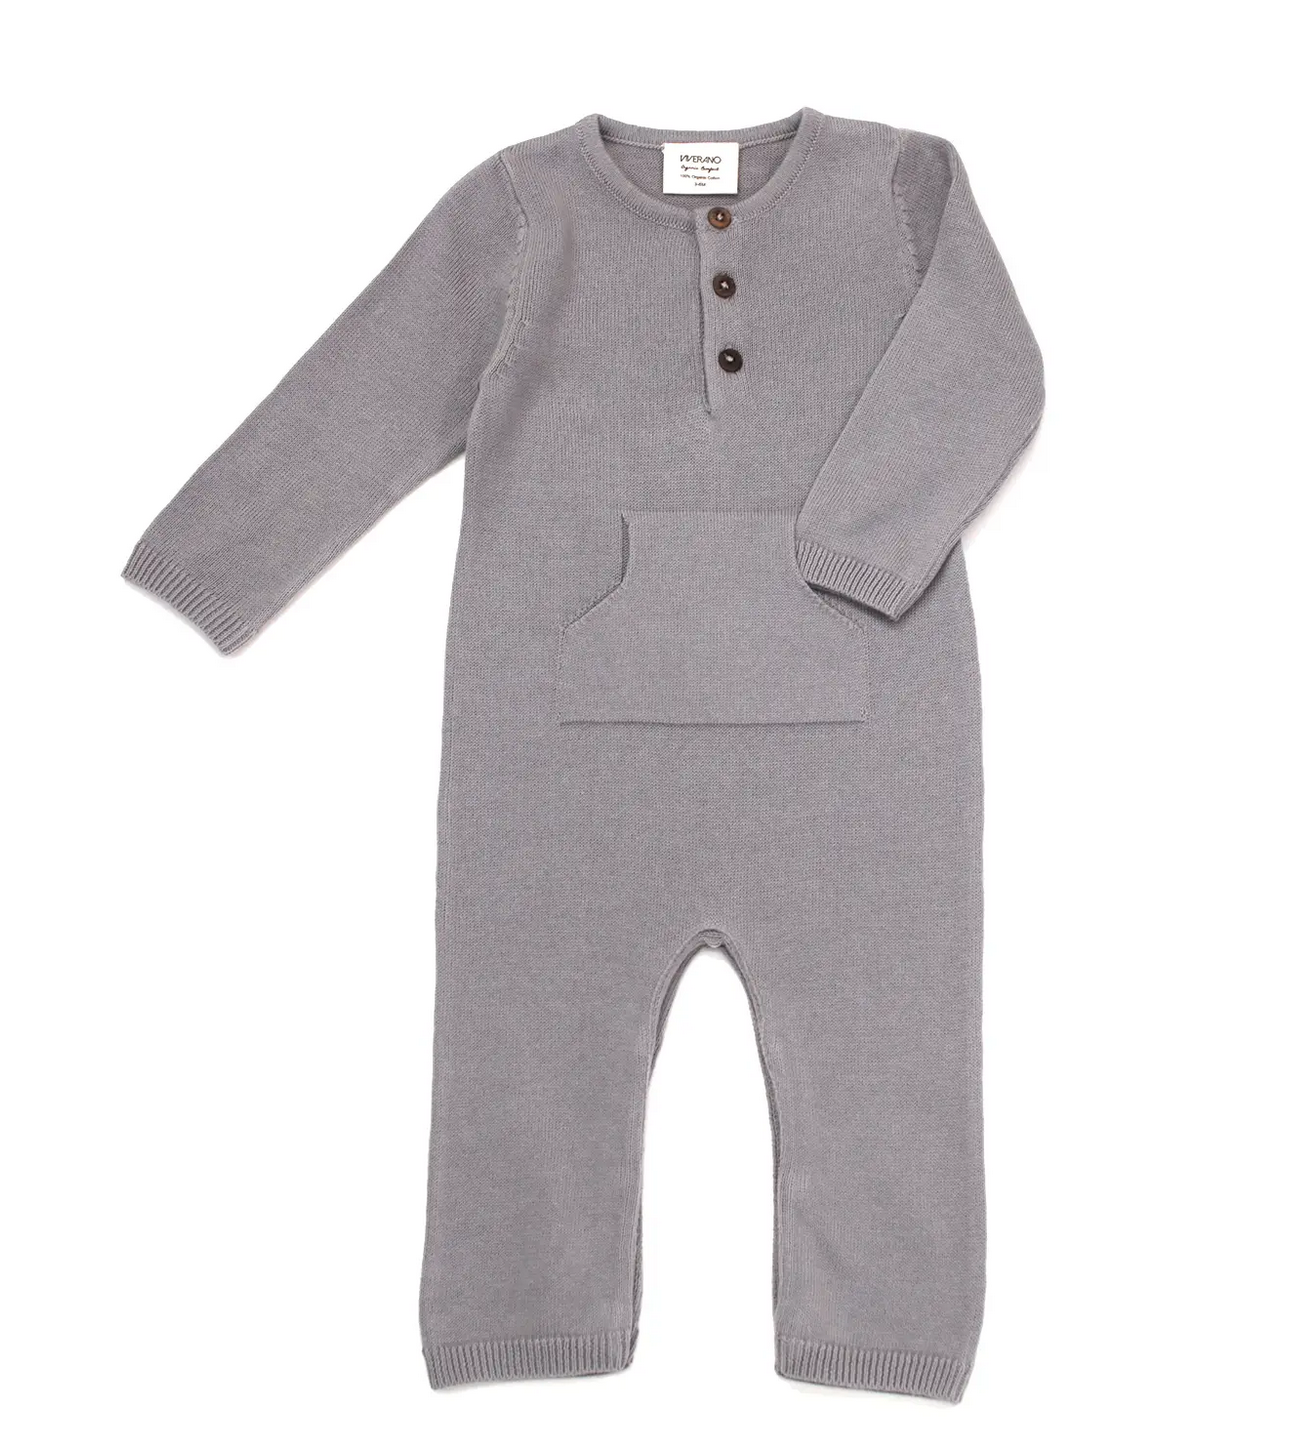 Sweater Knit Kangaroo Coverall Romper (Organic Cotton)  Grey